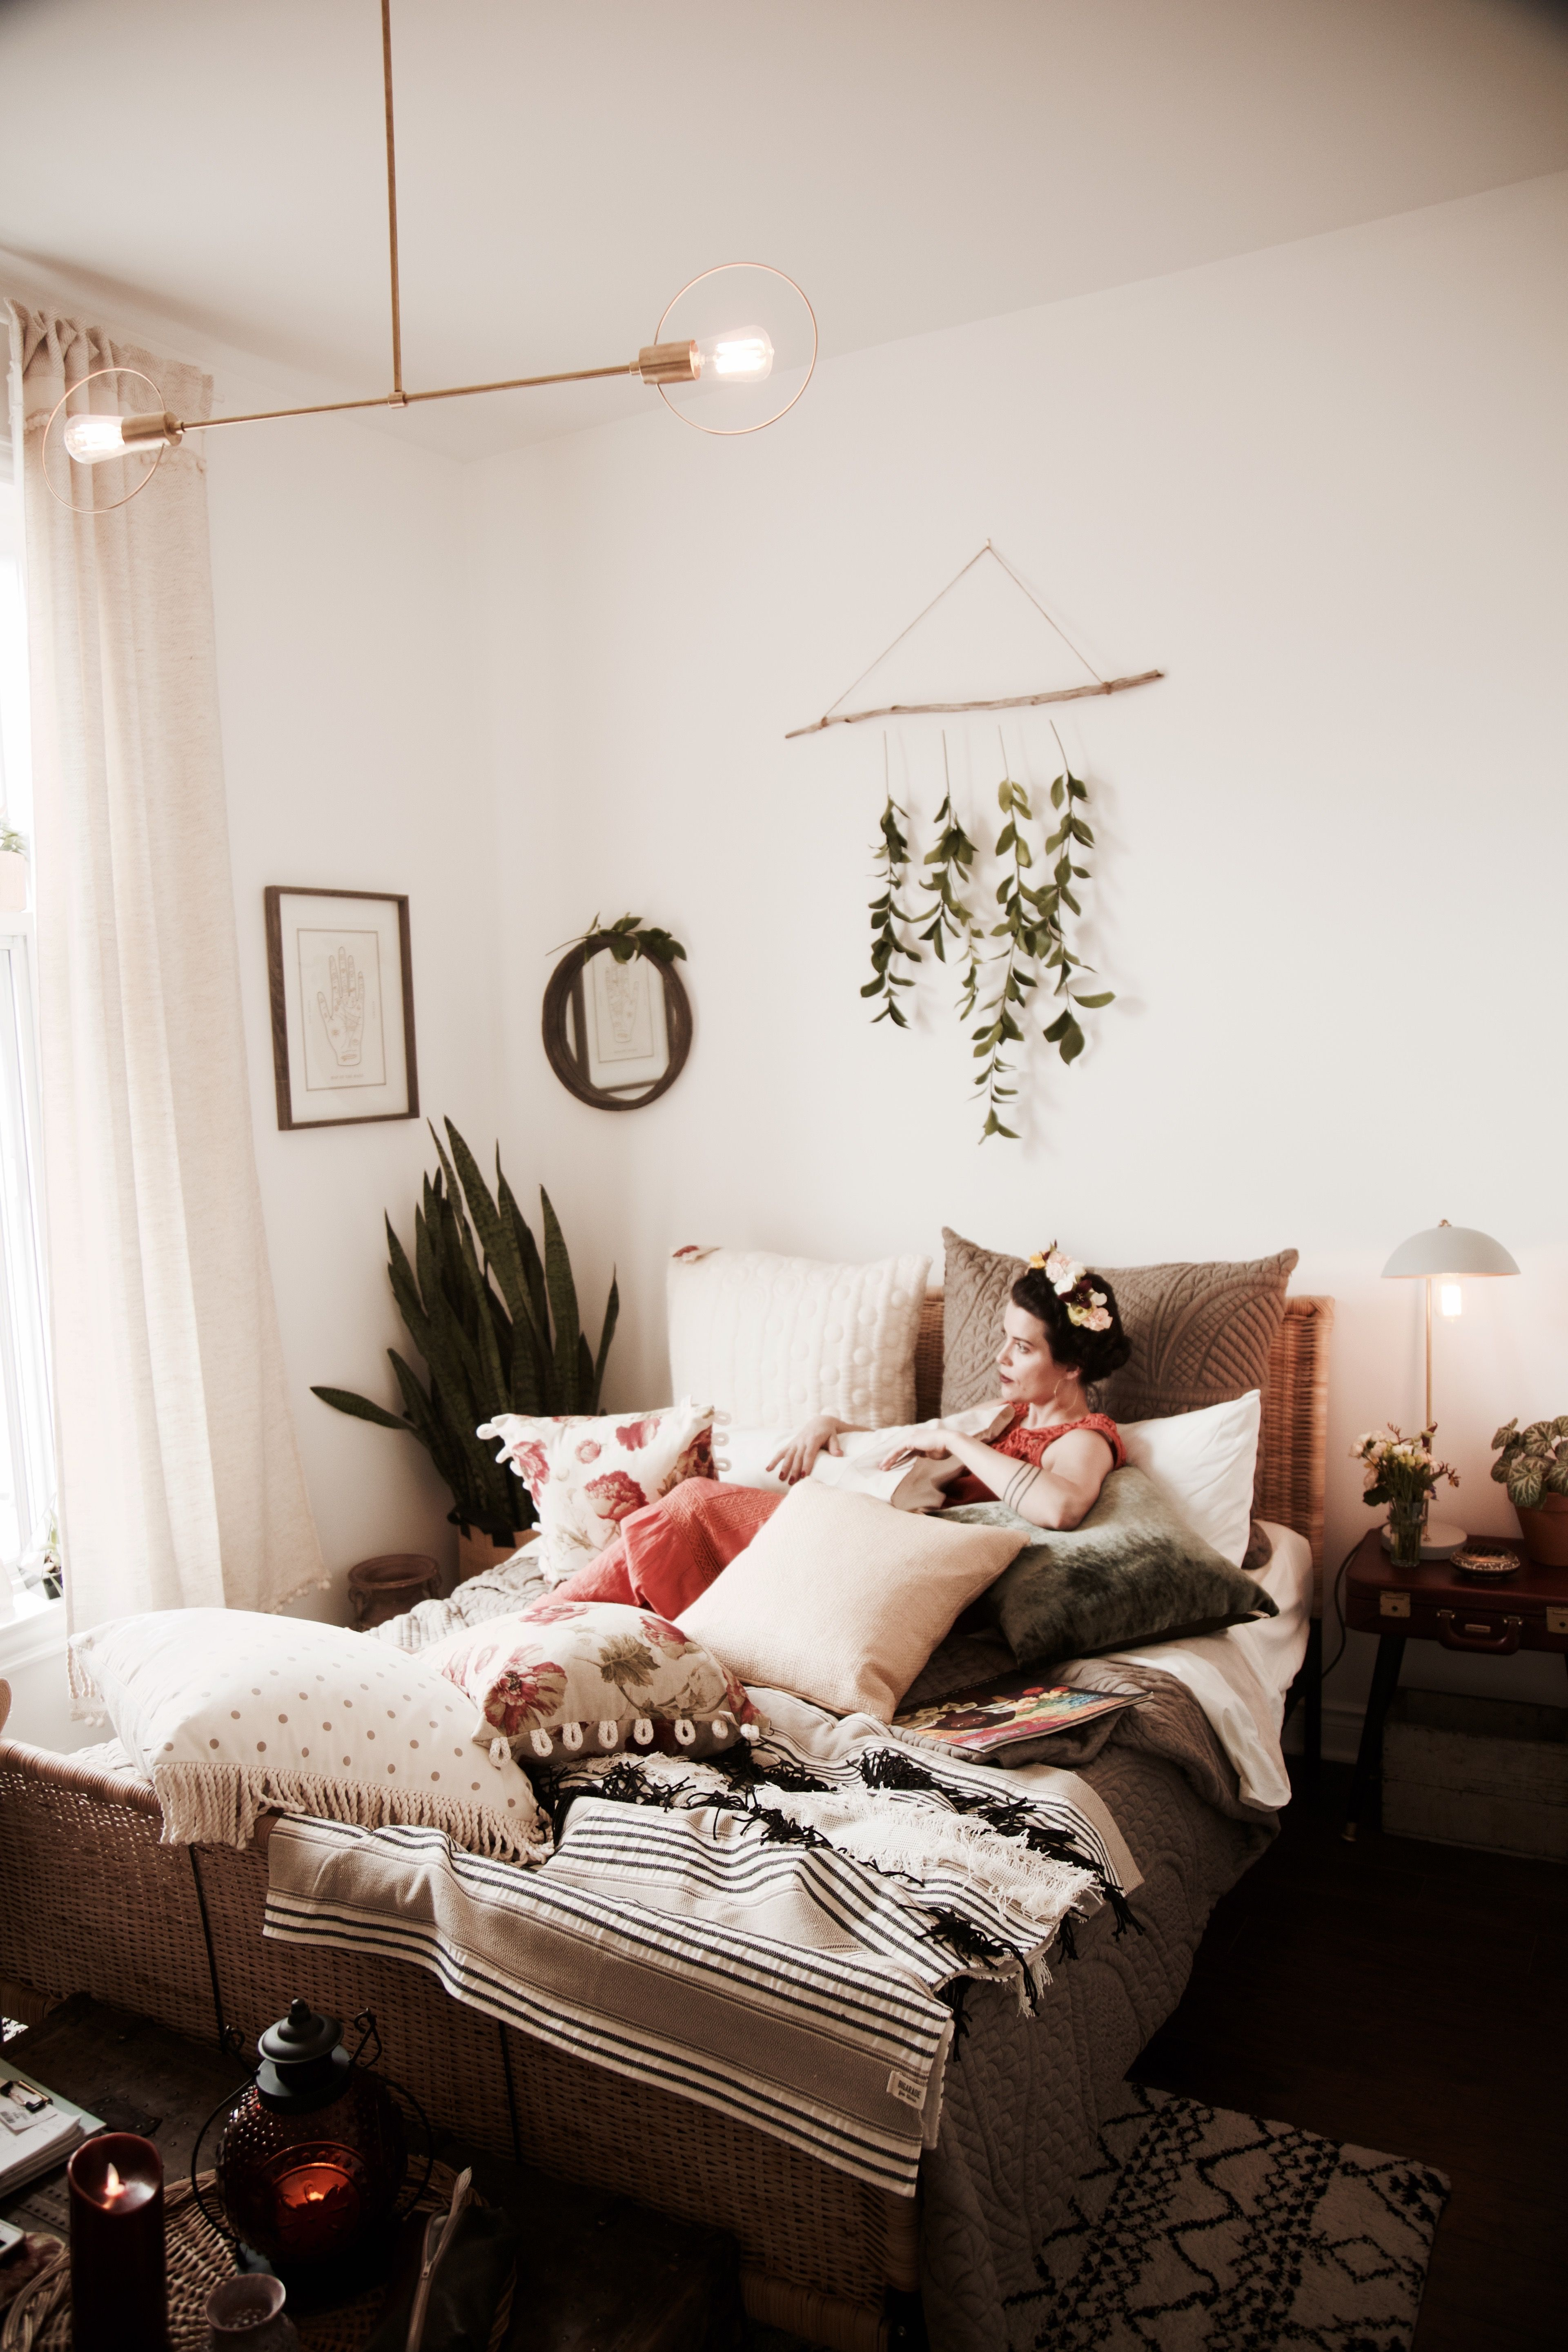 Small and lovely bohemian bedroom interior design made in